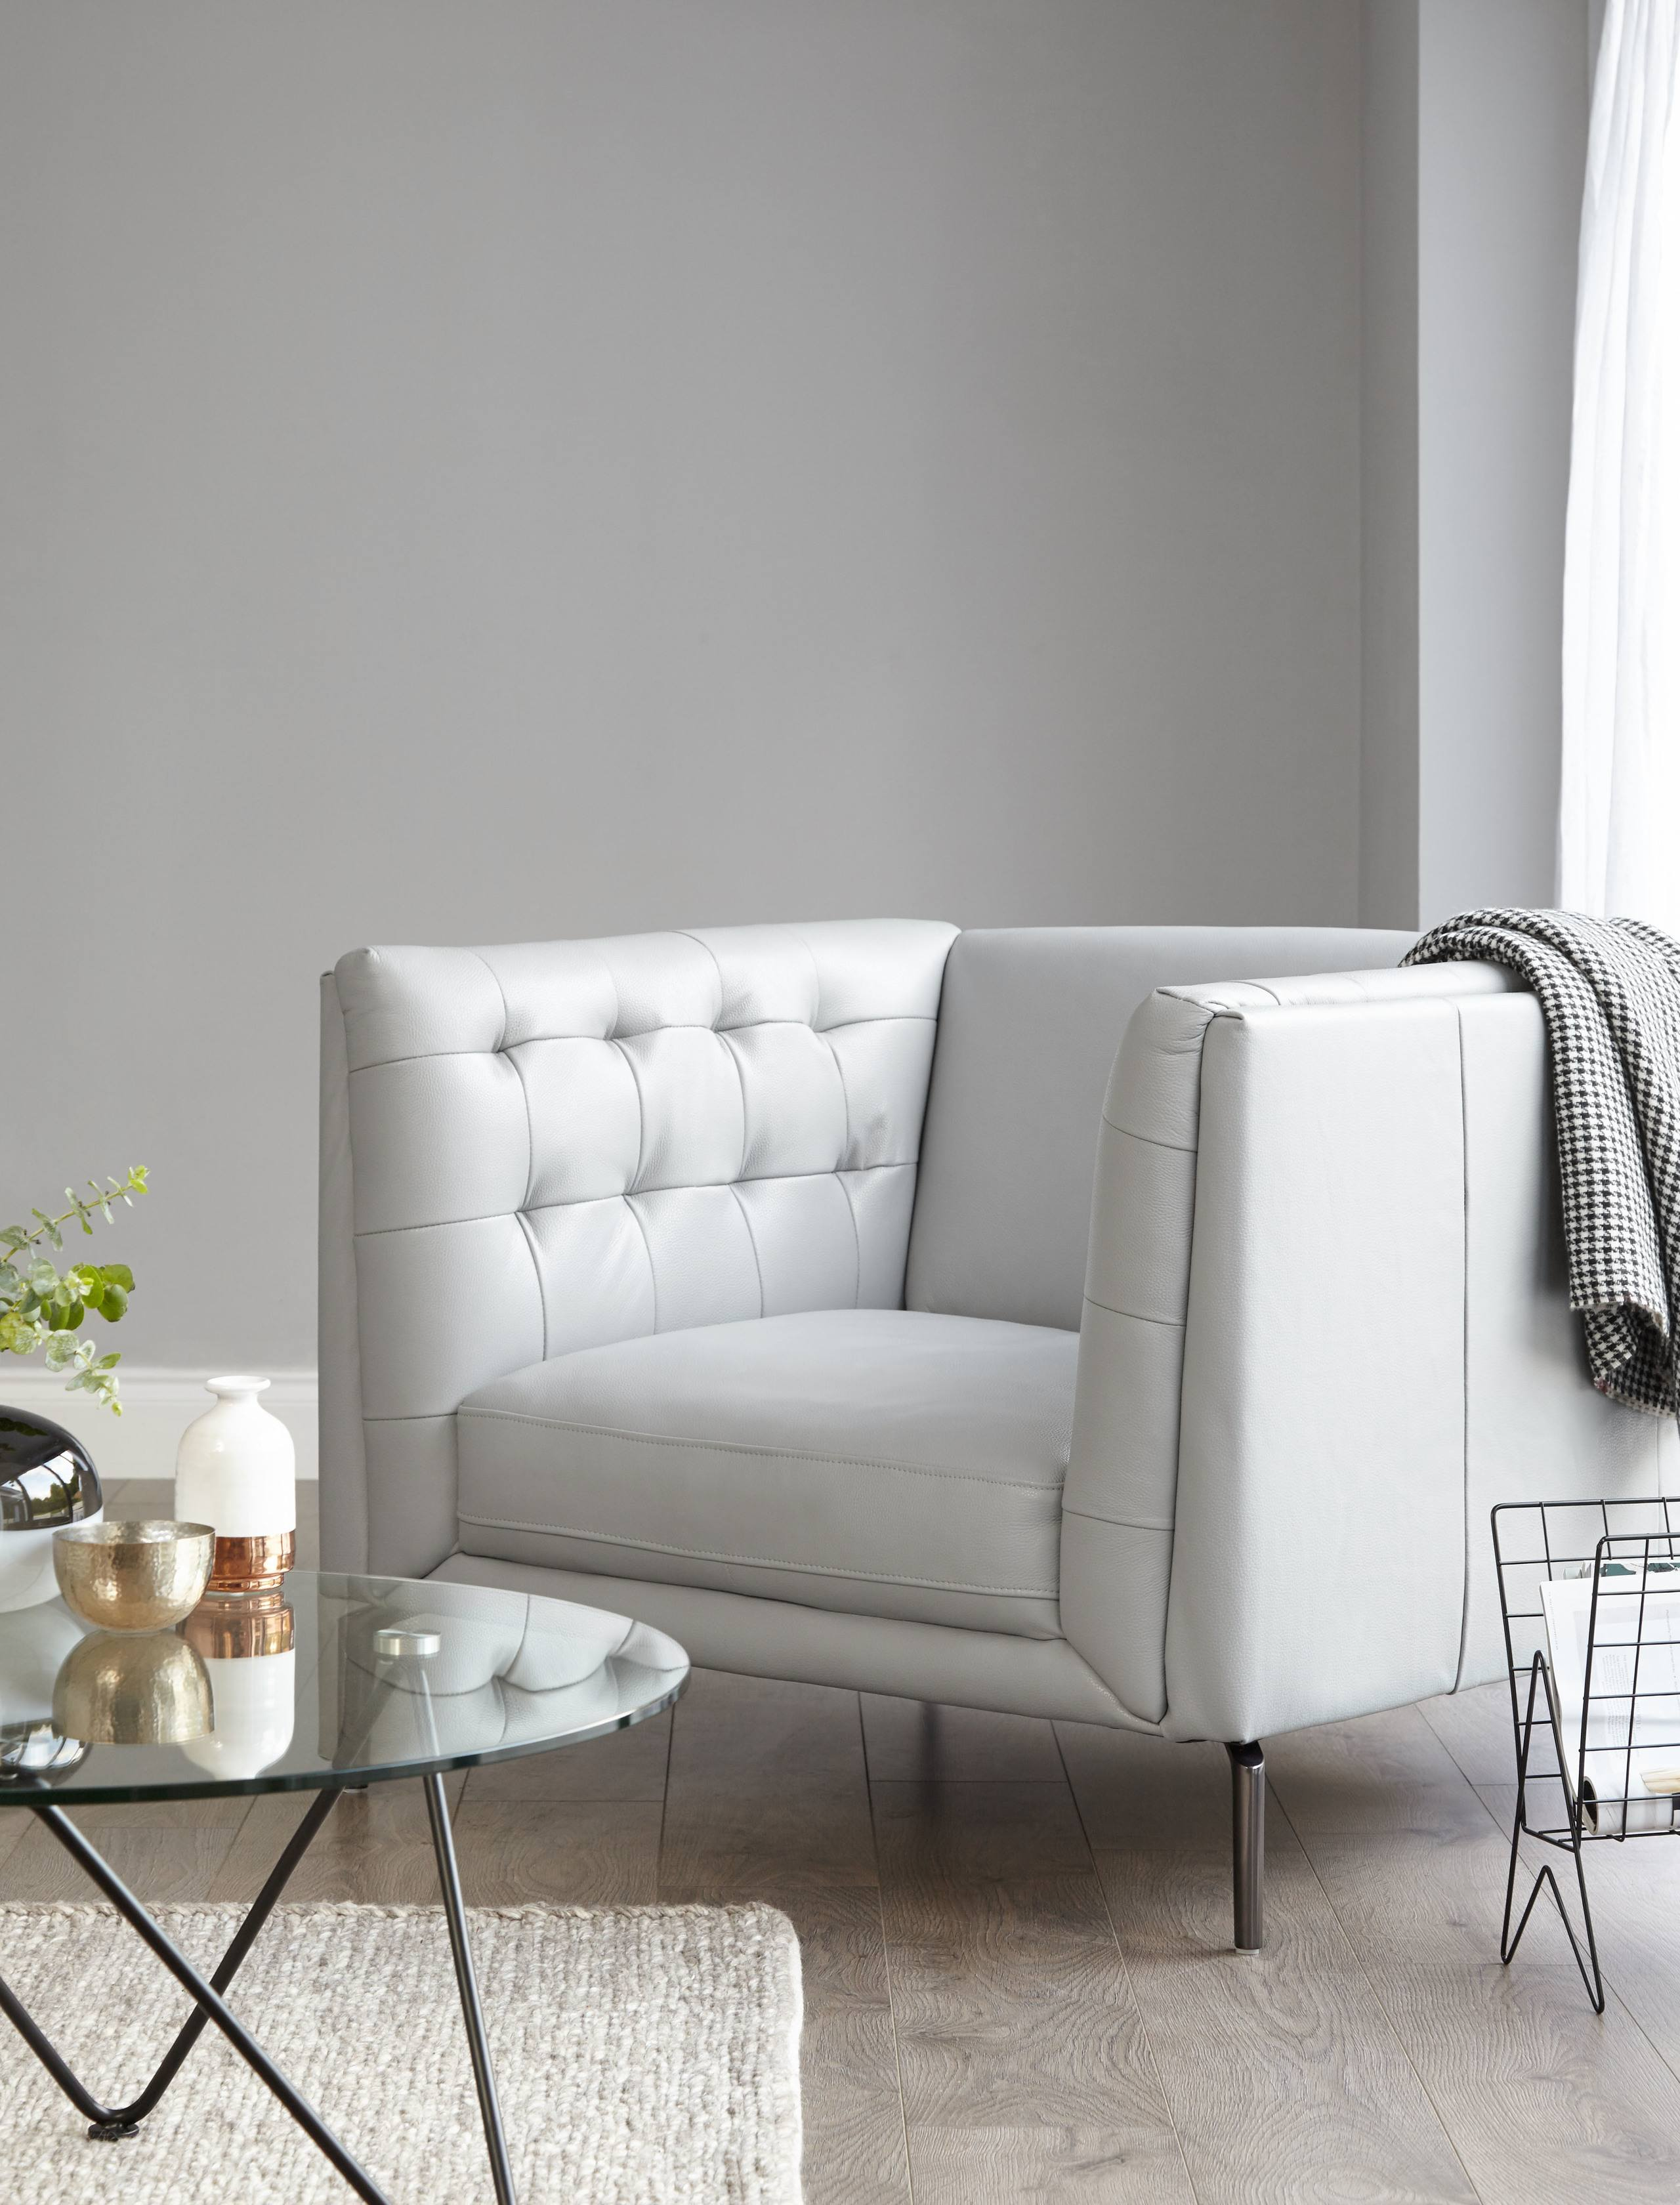 Create impact in your living room with a quilted detailing and high arms. Product: Ellis Leather Armchair